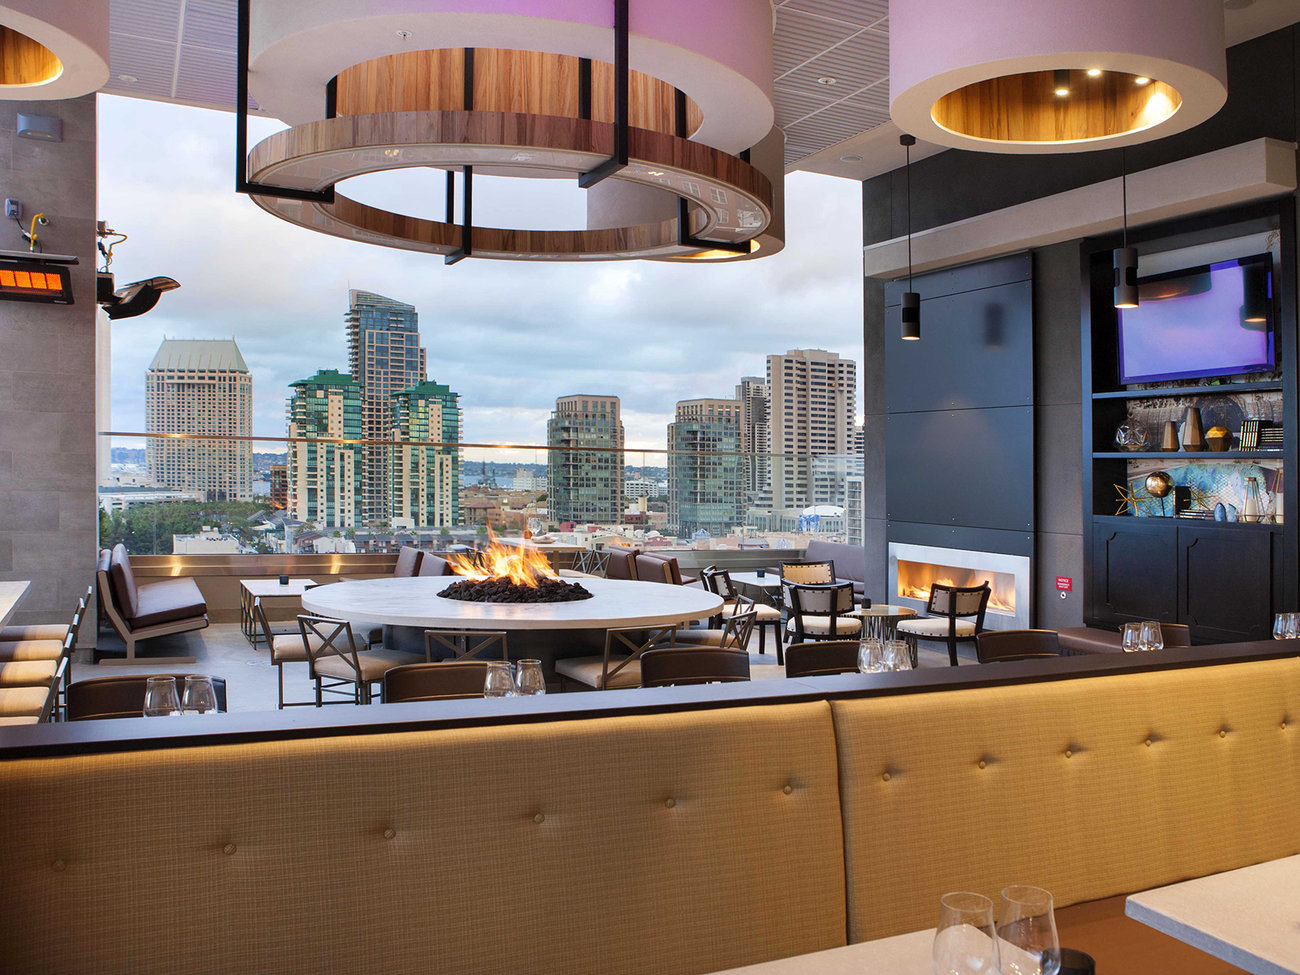 The Nolen Restaurant in San Diego